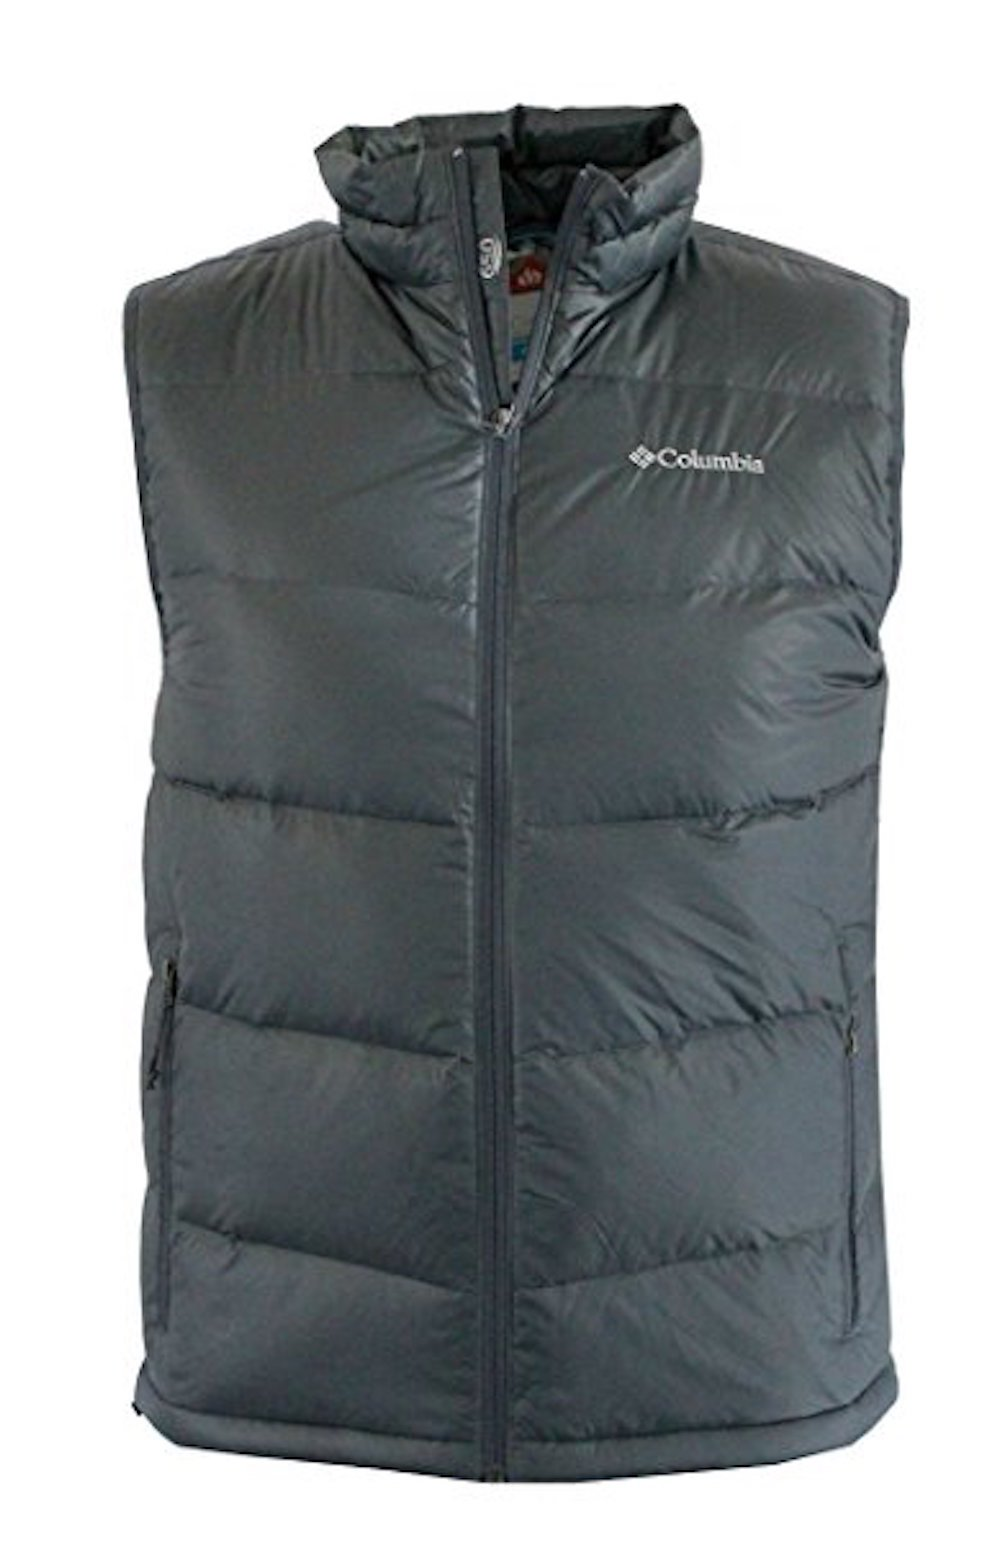 Columbia Men's Superpipe Slope Winter Omni Heat 650 Down Puffer Vest (Graphite, XL)